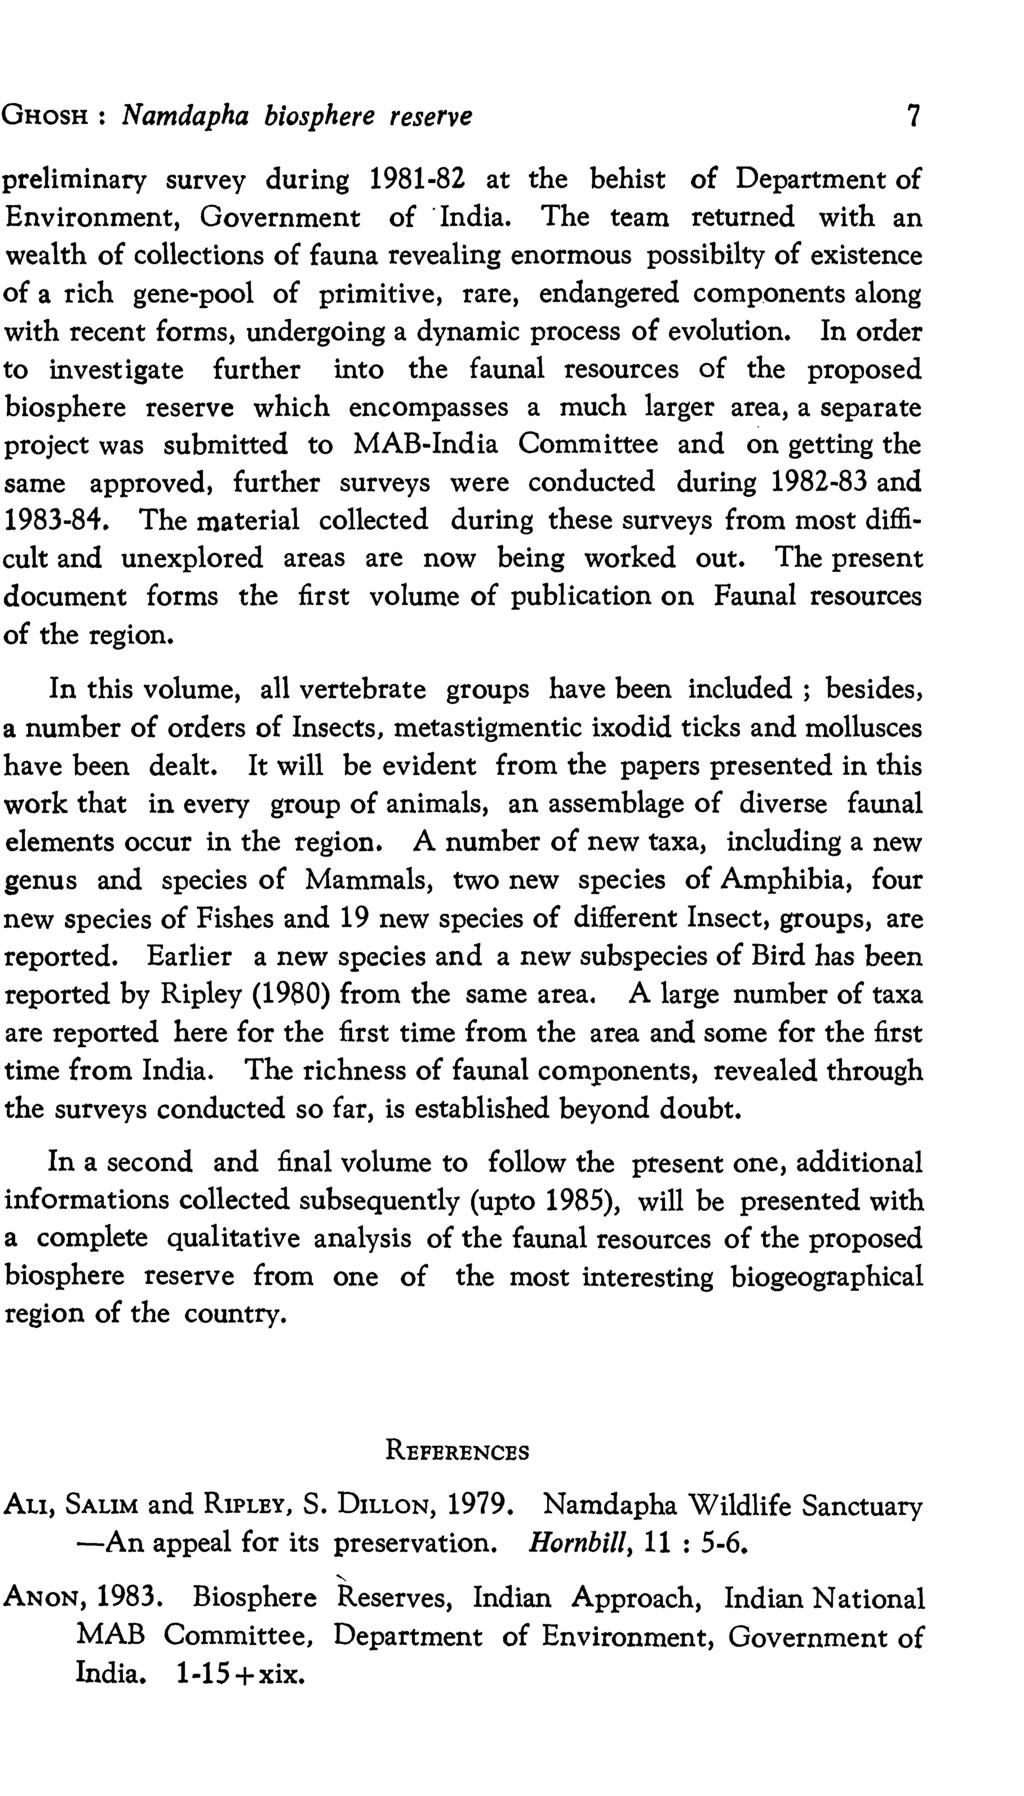 Records Of The Zoological Survey India Pdf Expedition E6661 Silver Black Red Men Original Ghosh Namdapha Biosphere Reserve 7 Preliminary During 1981 82 At Behist